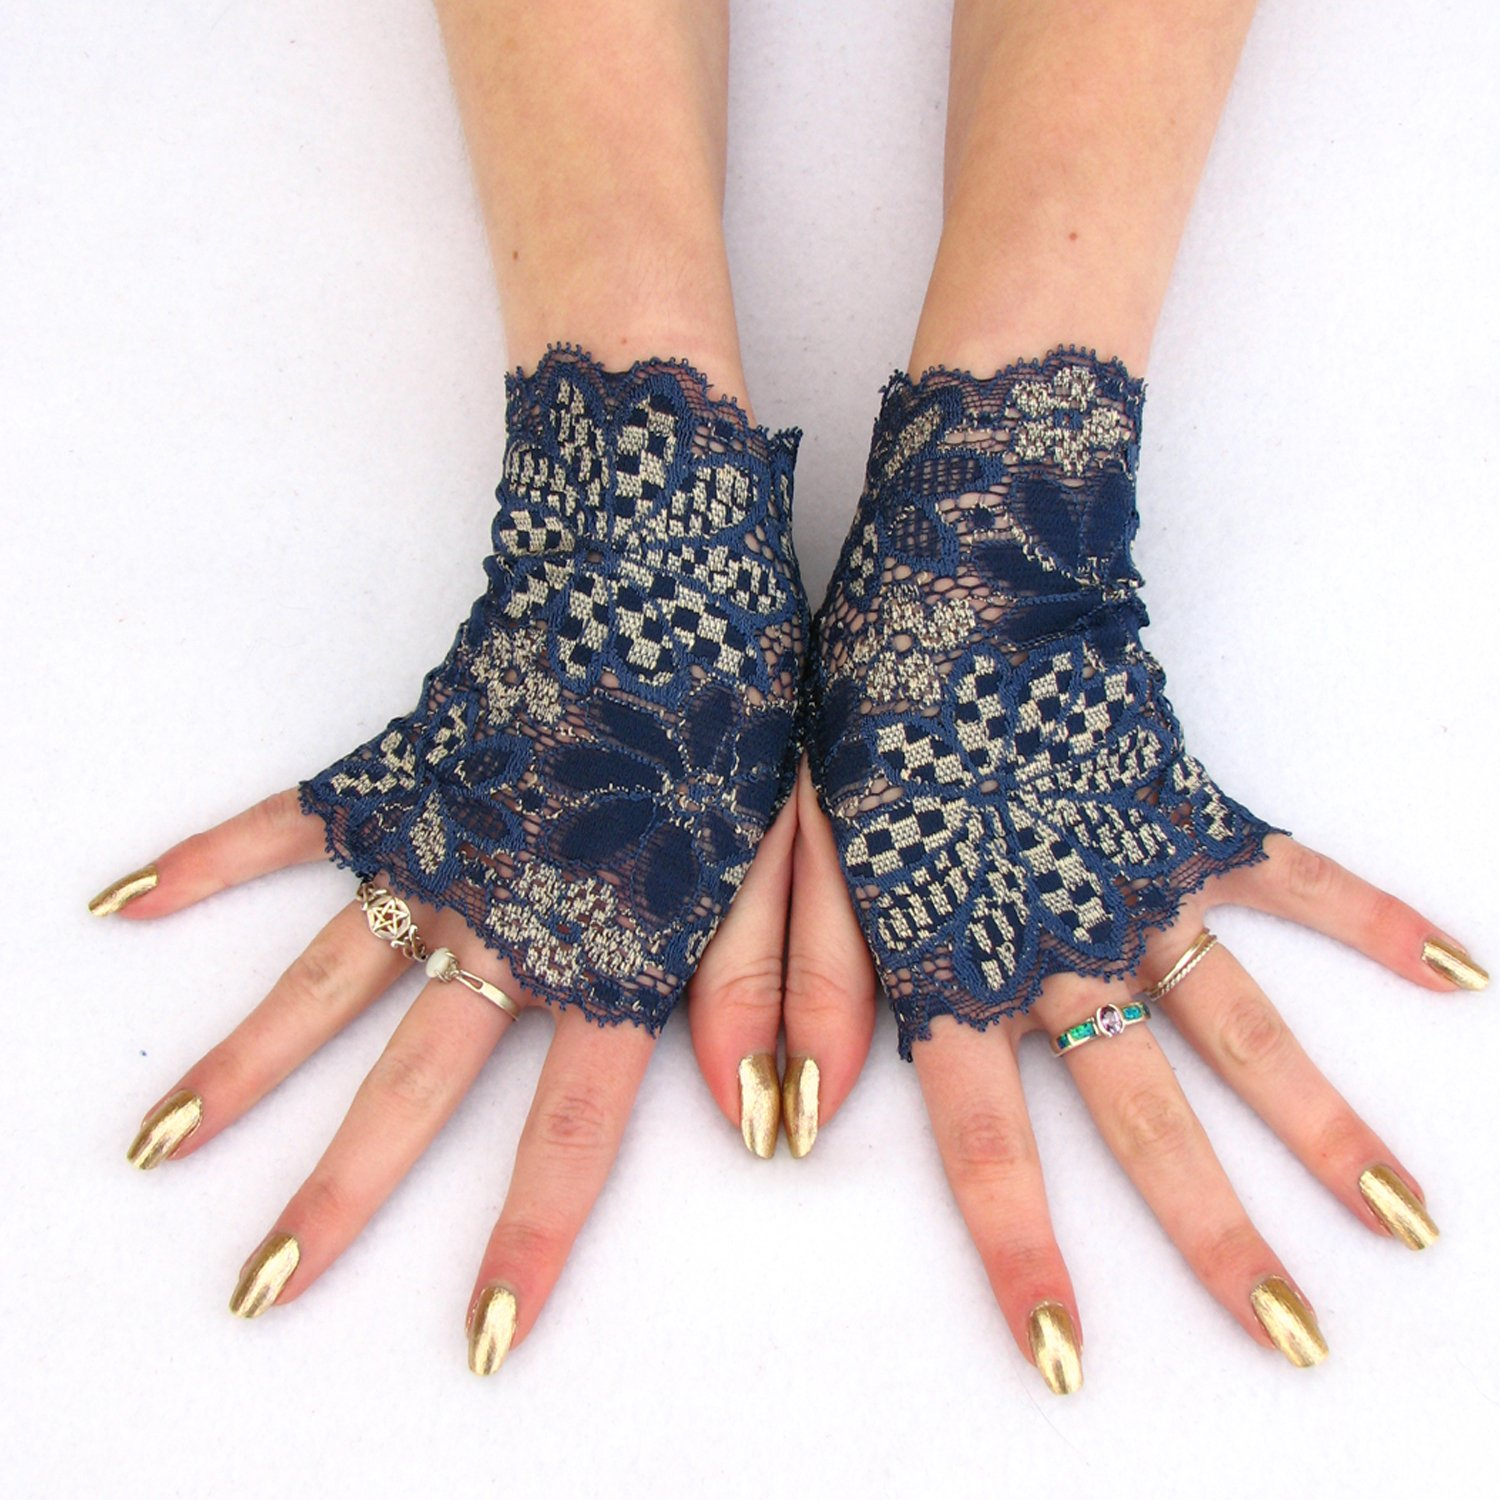 Sapphire Blue Lace Fingerless Gloves with Gold Accents